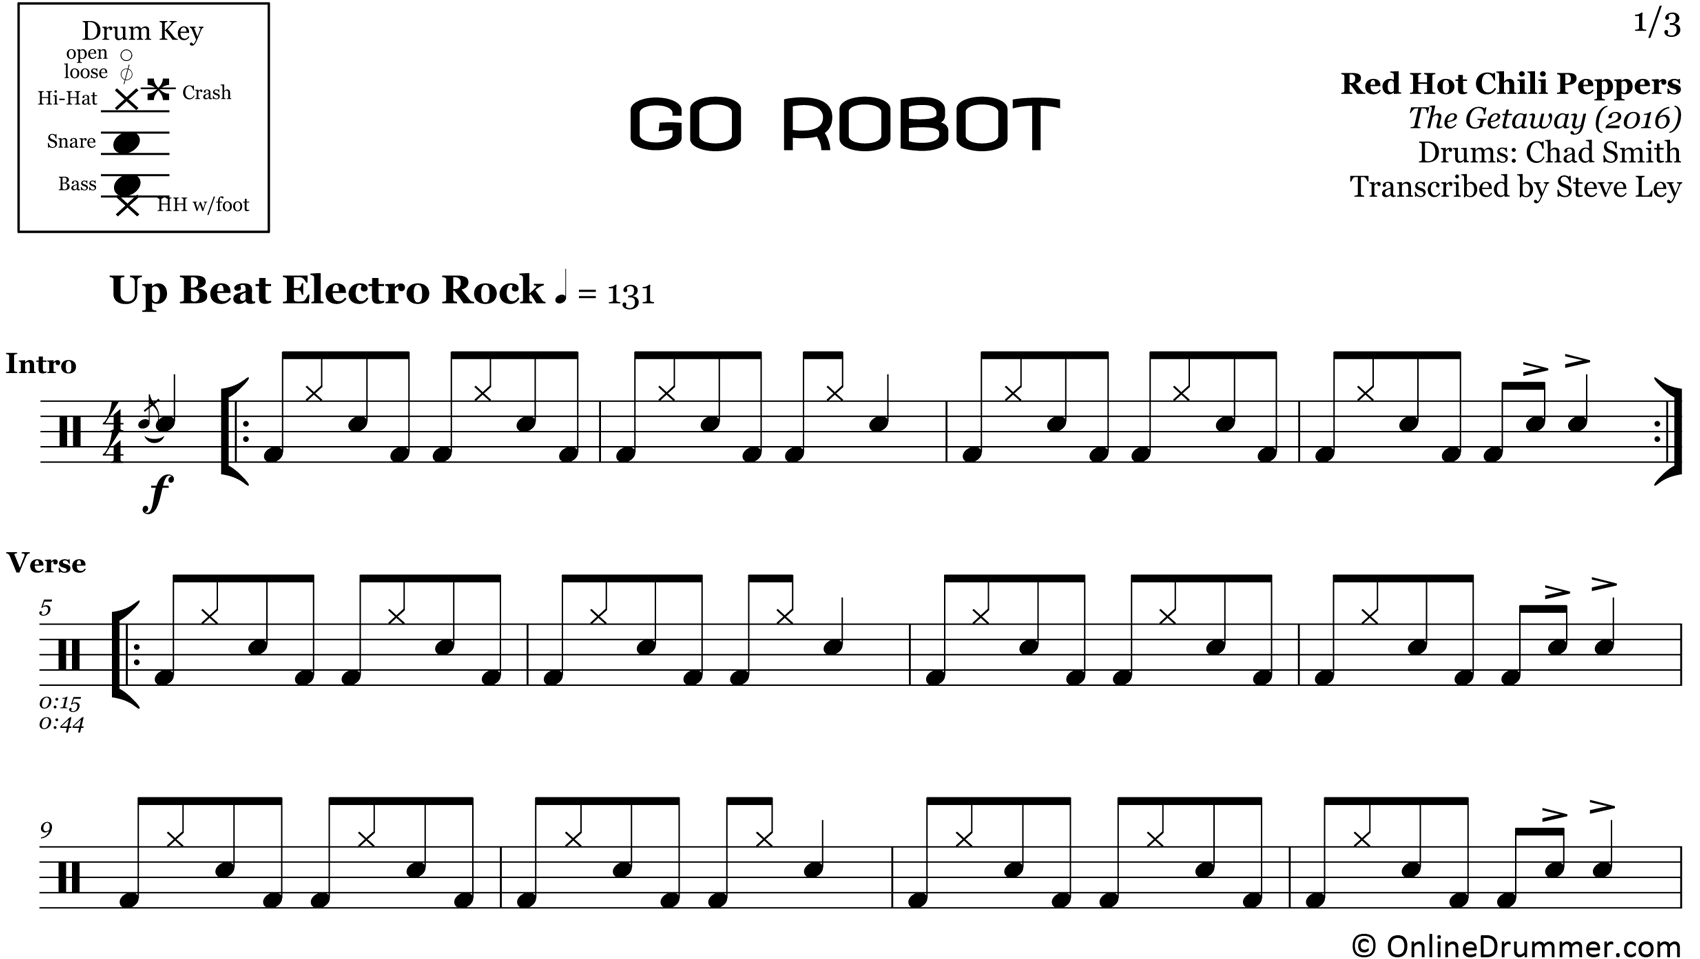 Go Robot - Red Hot Chili Peppers - Drum Sheet Music